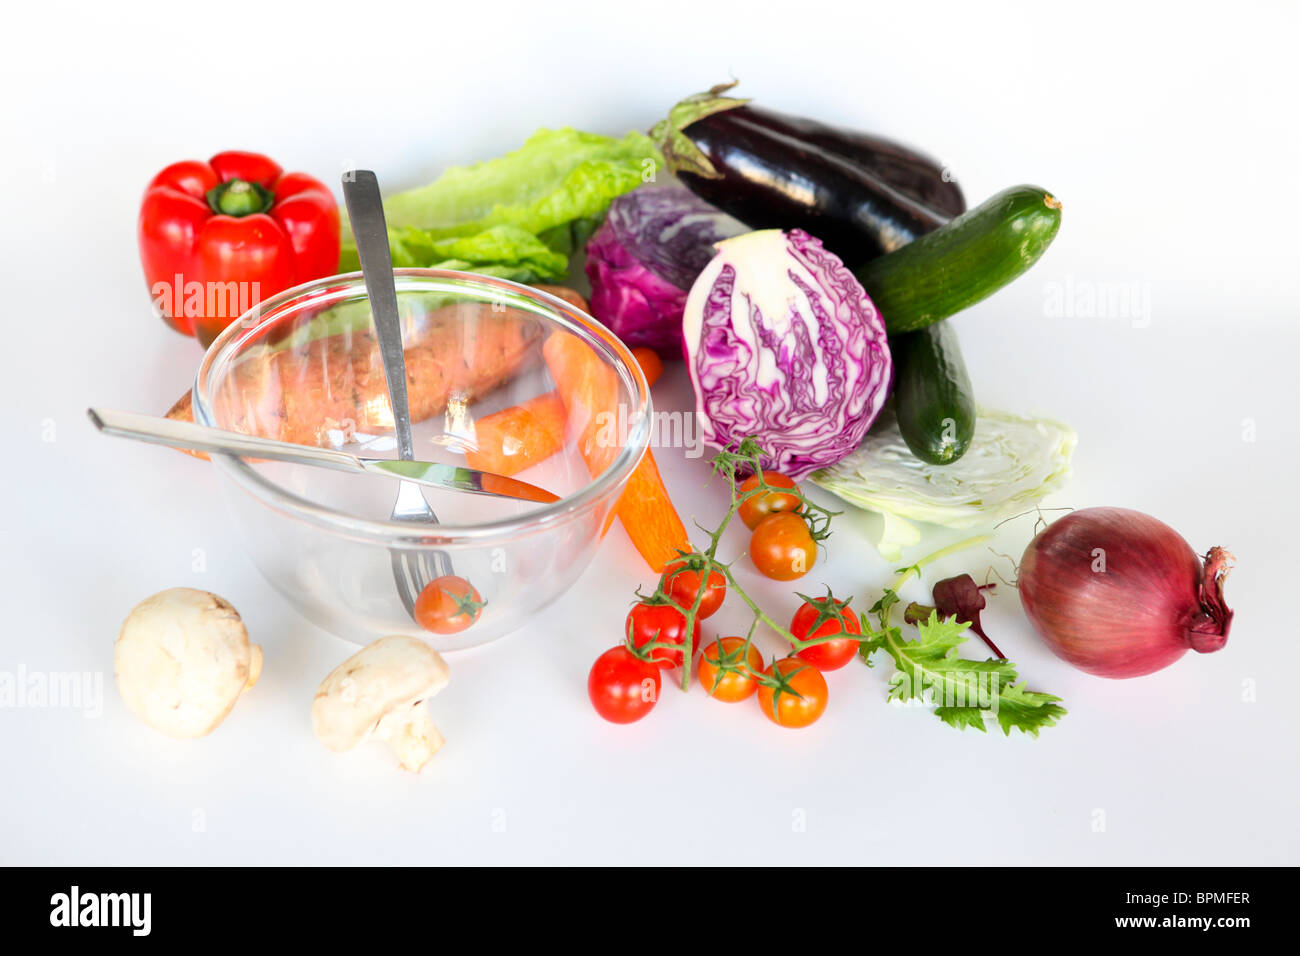 Fresh vegetables and an empty salad bowl. Whole uncut salad ingredients on white background - Stock Image